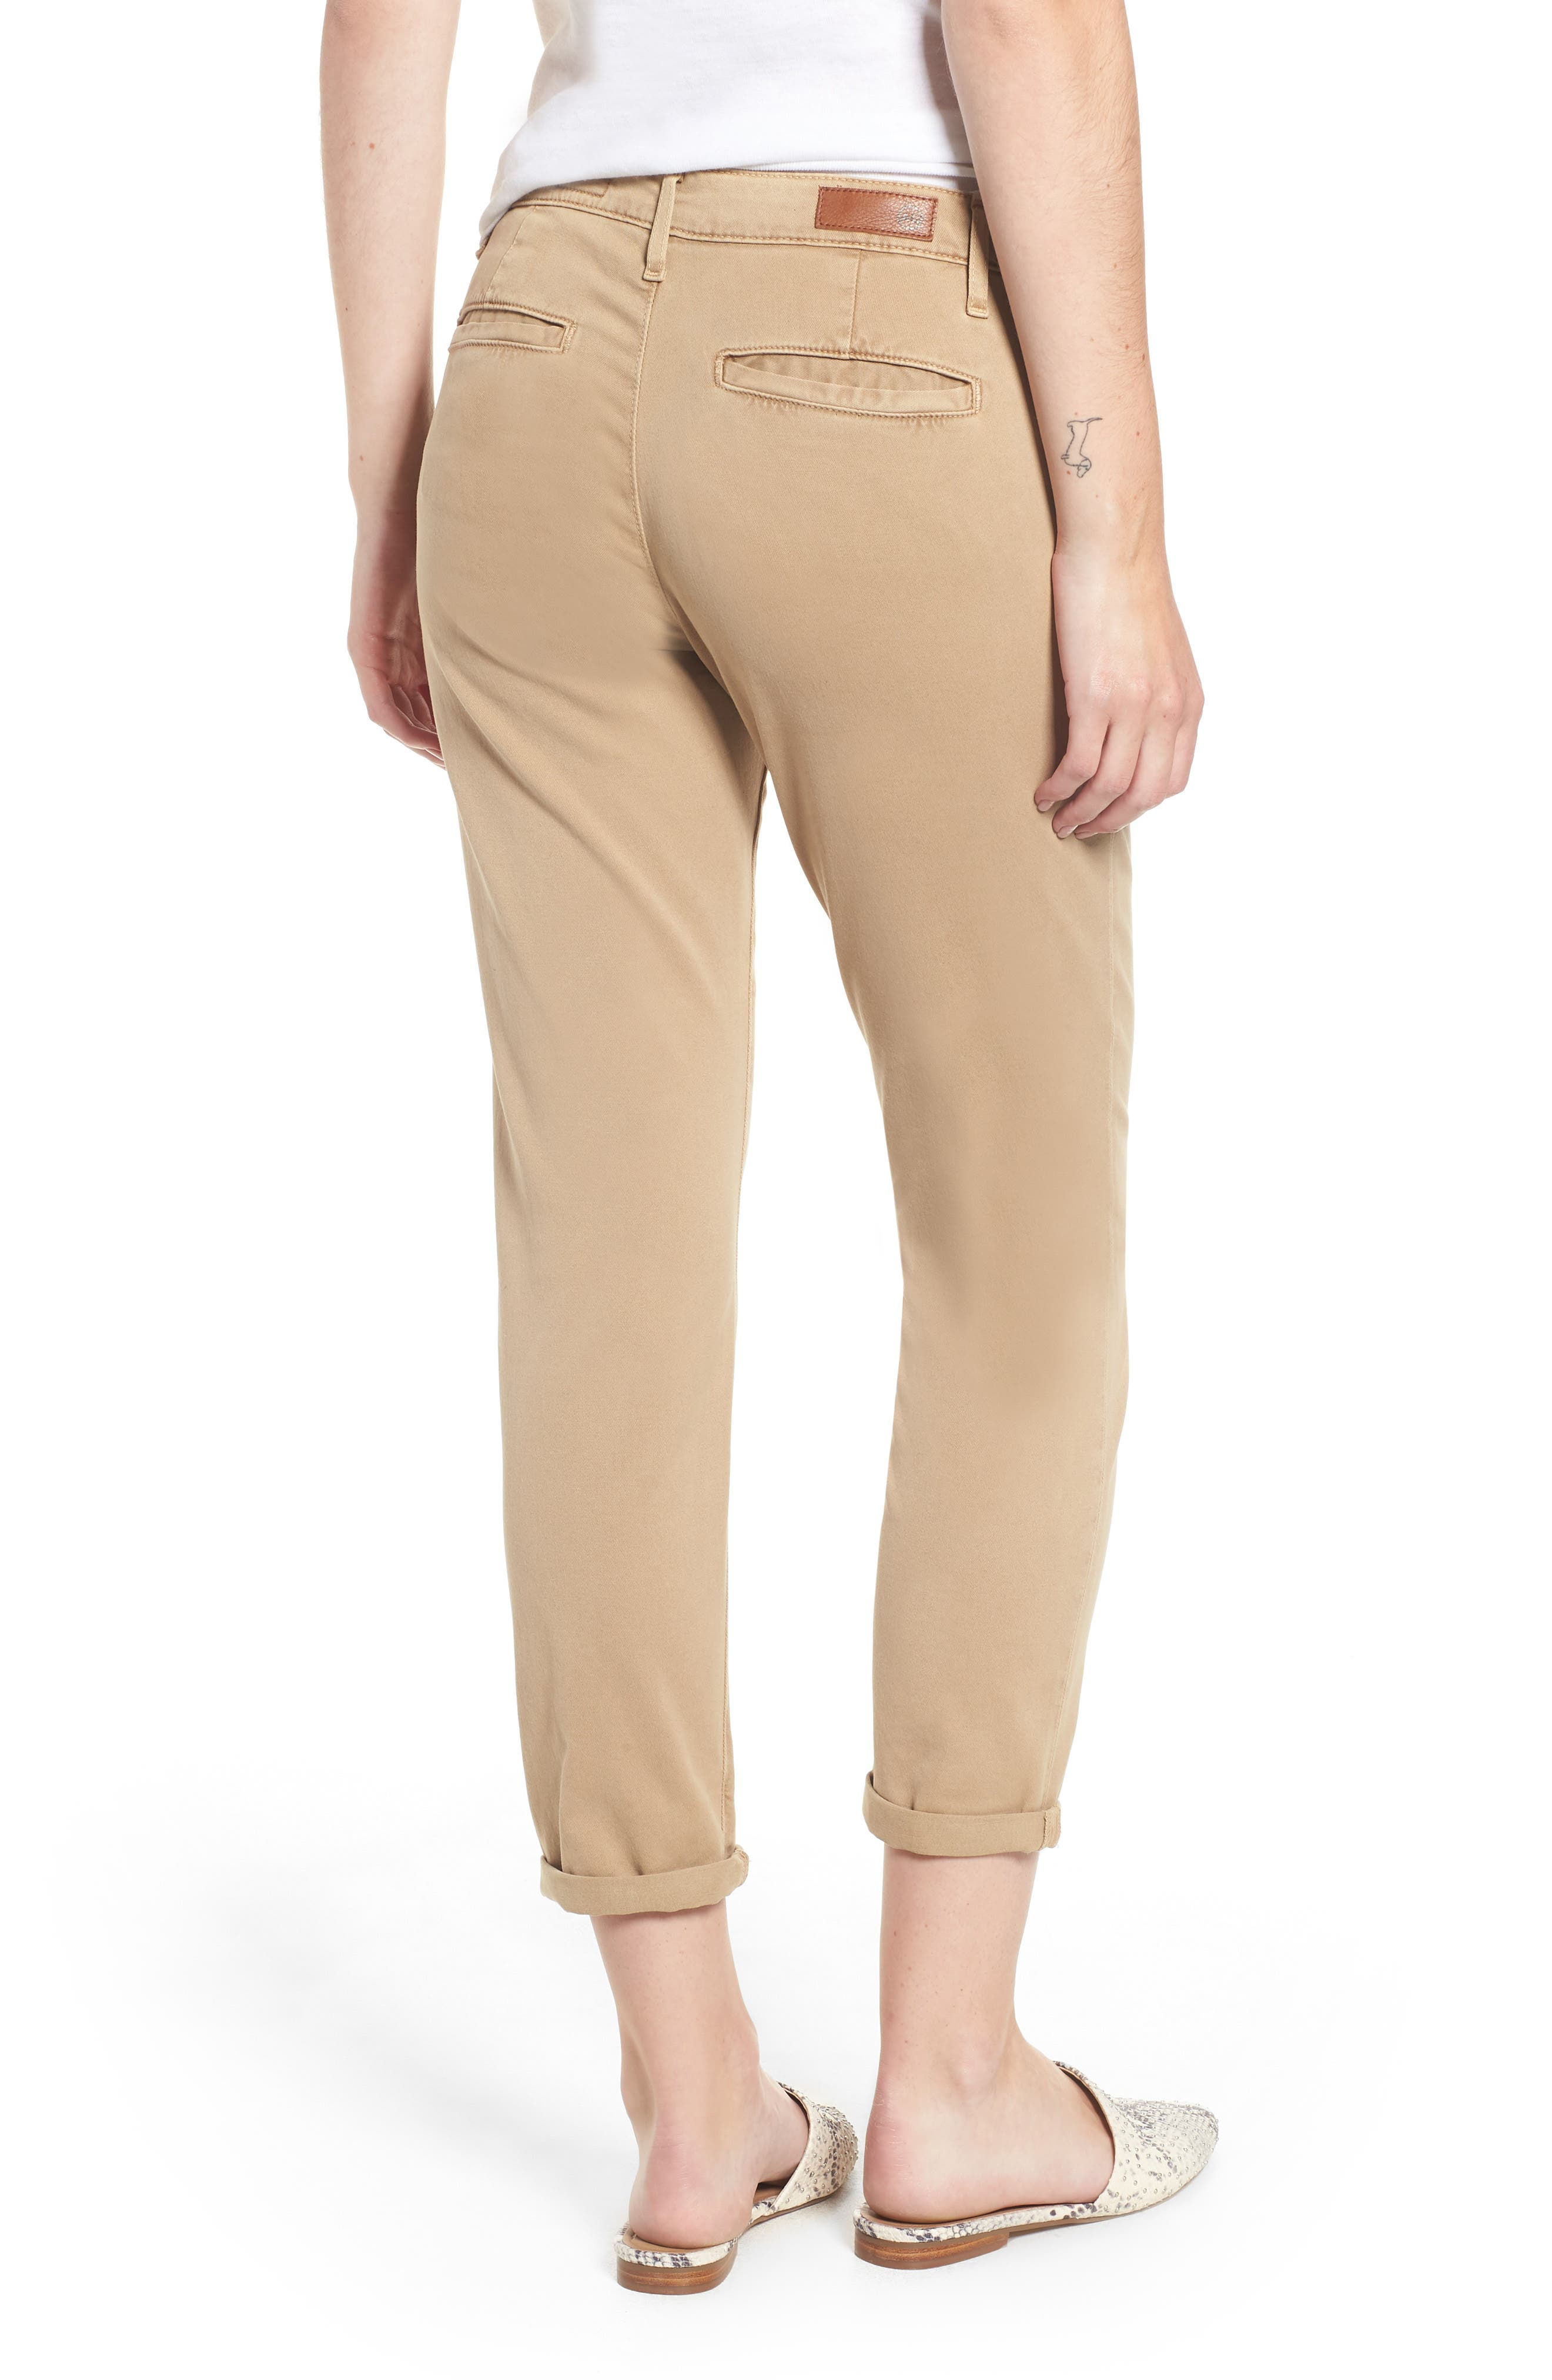 Caden Crop Twill Trousers,                             Alternate thumbnail 2, color,                             SULFUR TOASTED